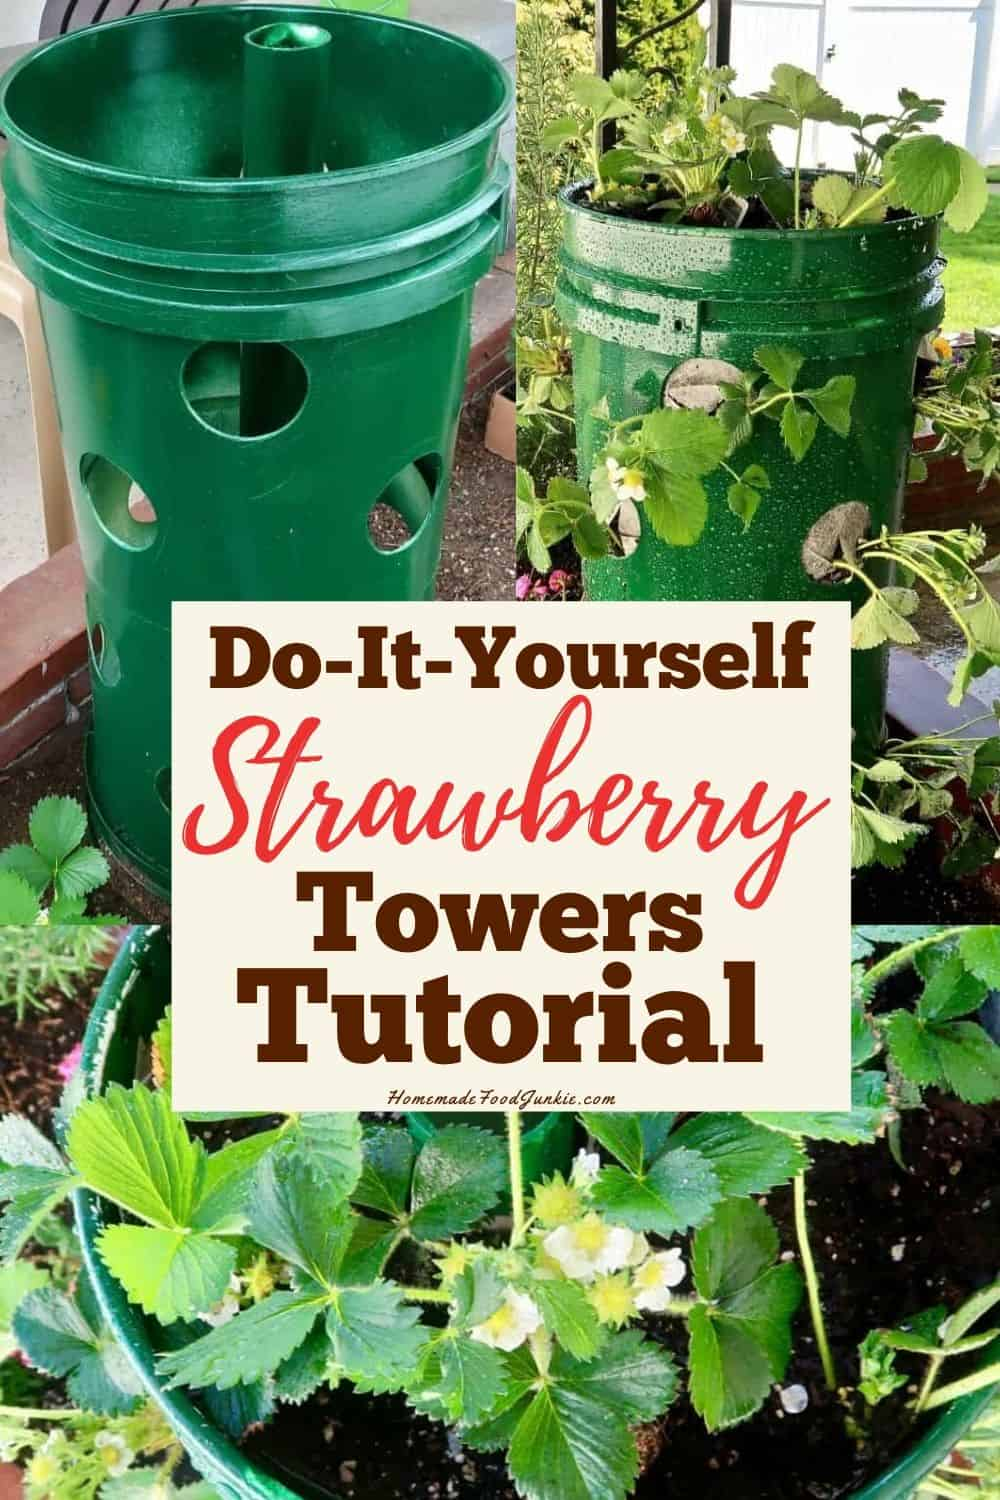 How to Make a Strawberry Tower